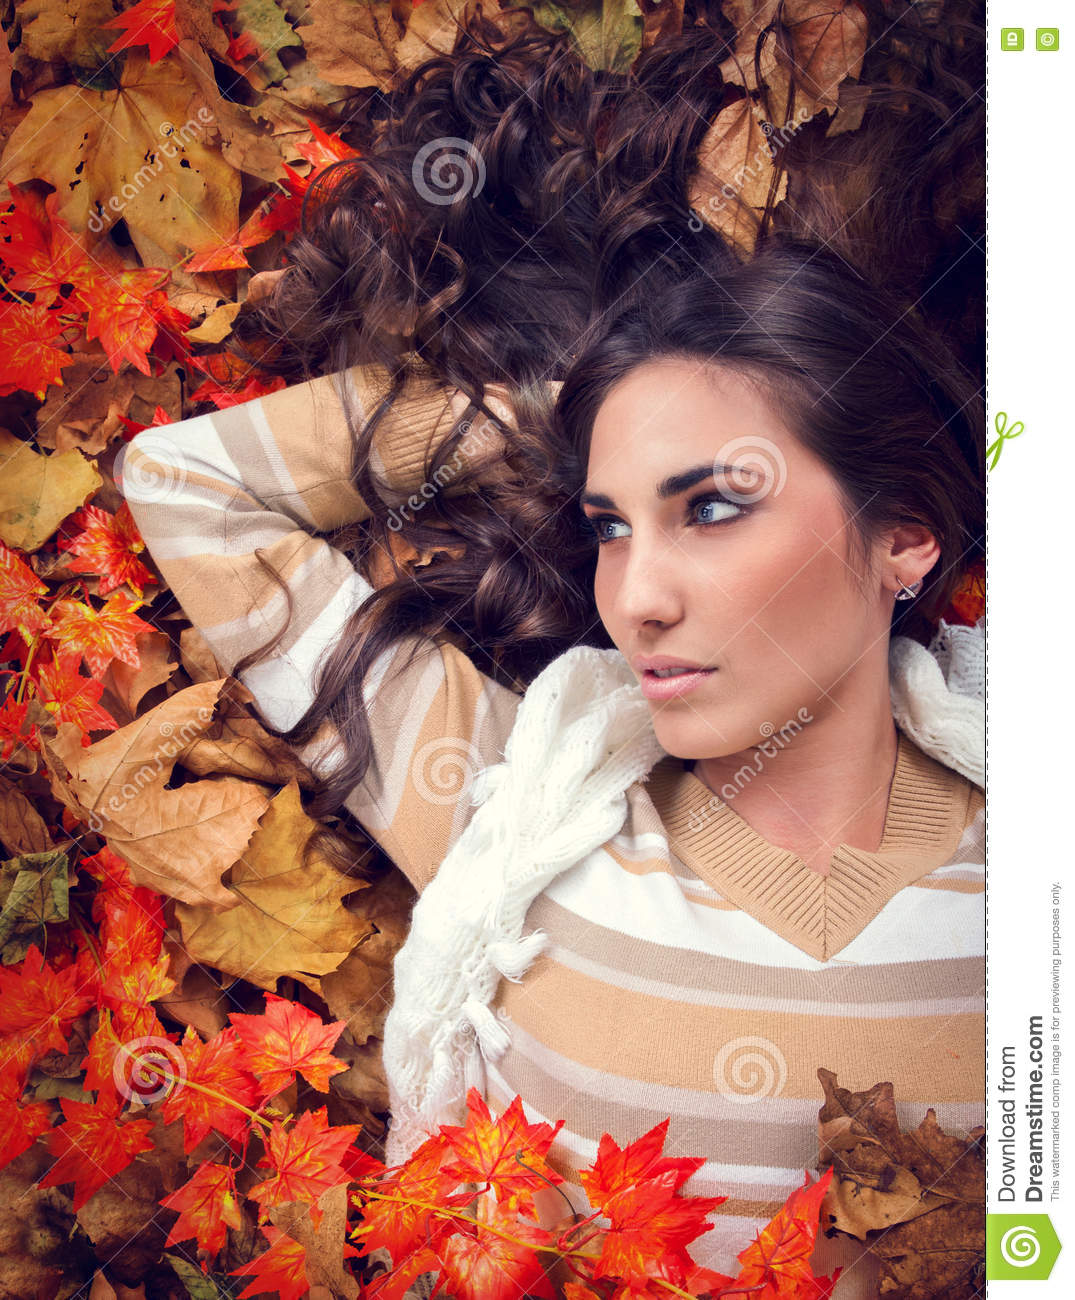 Autumn woman lying in orange leaves